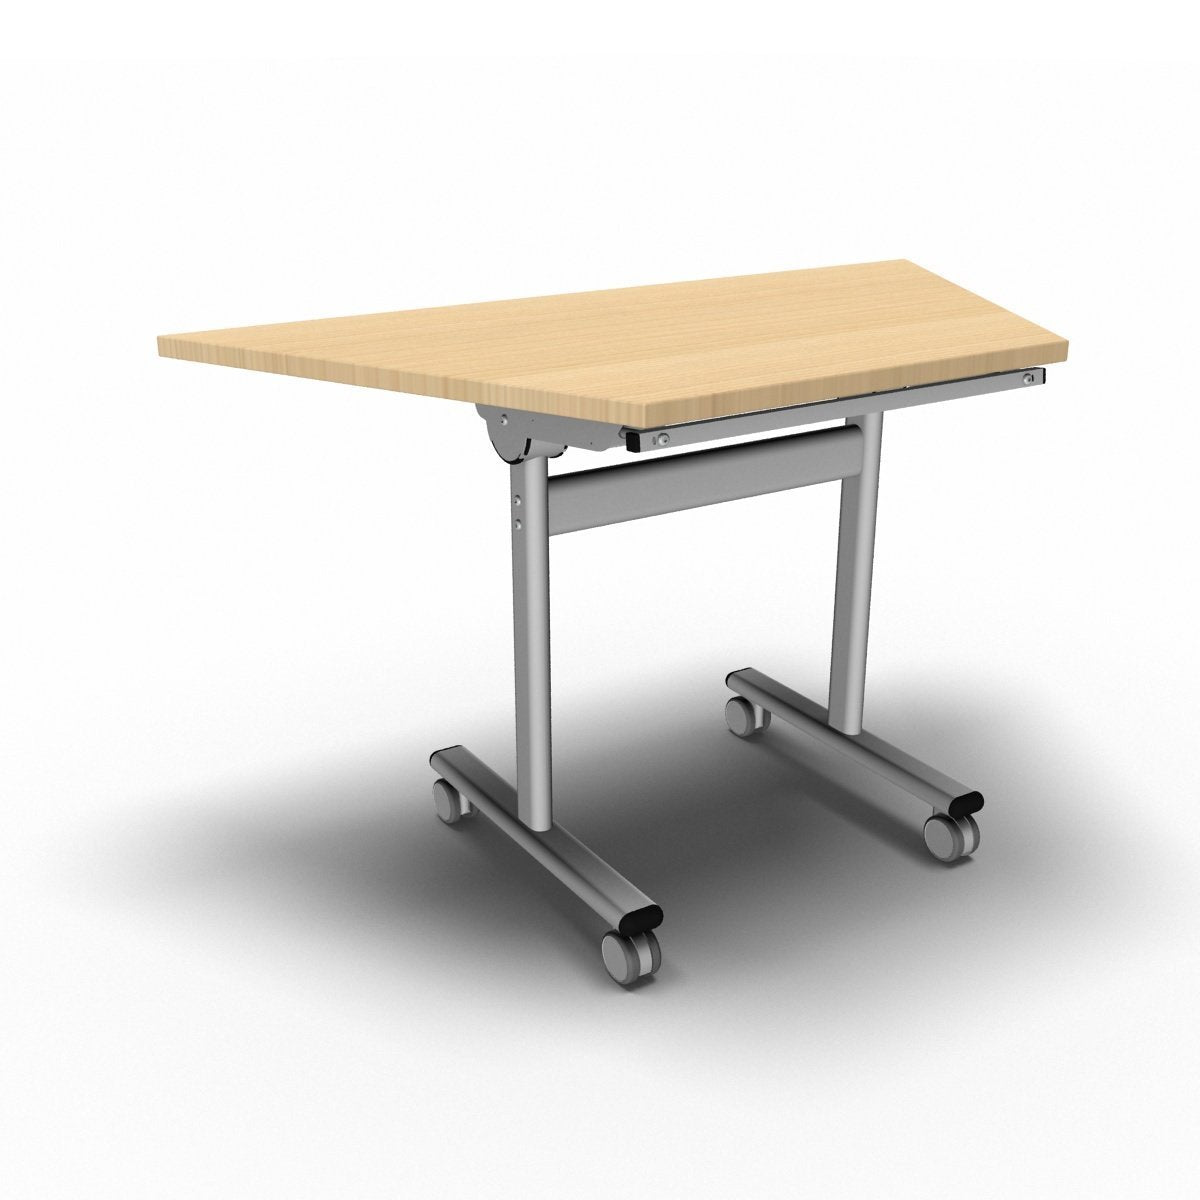 Table 1200 x 600 x 720mm / Trapezoidal / Maple Synergy Flip Top Tables